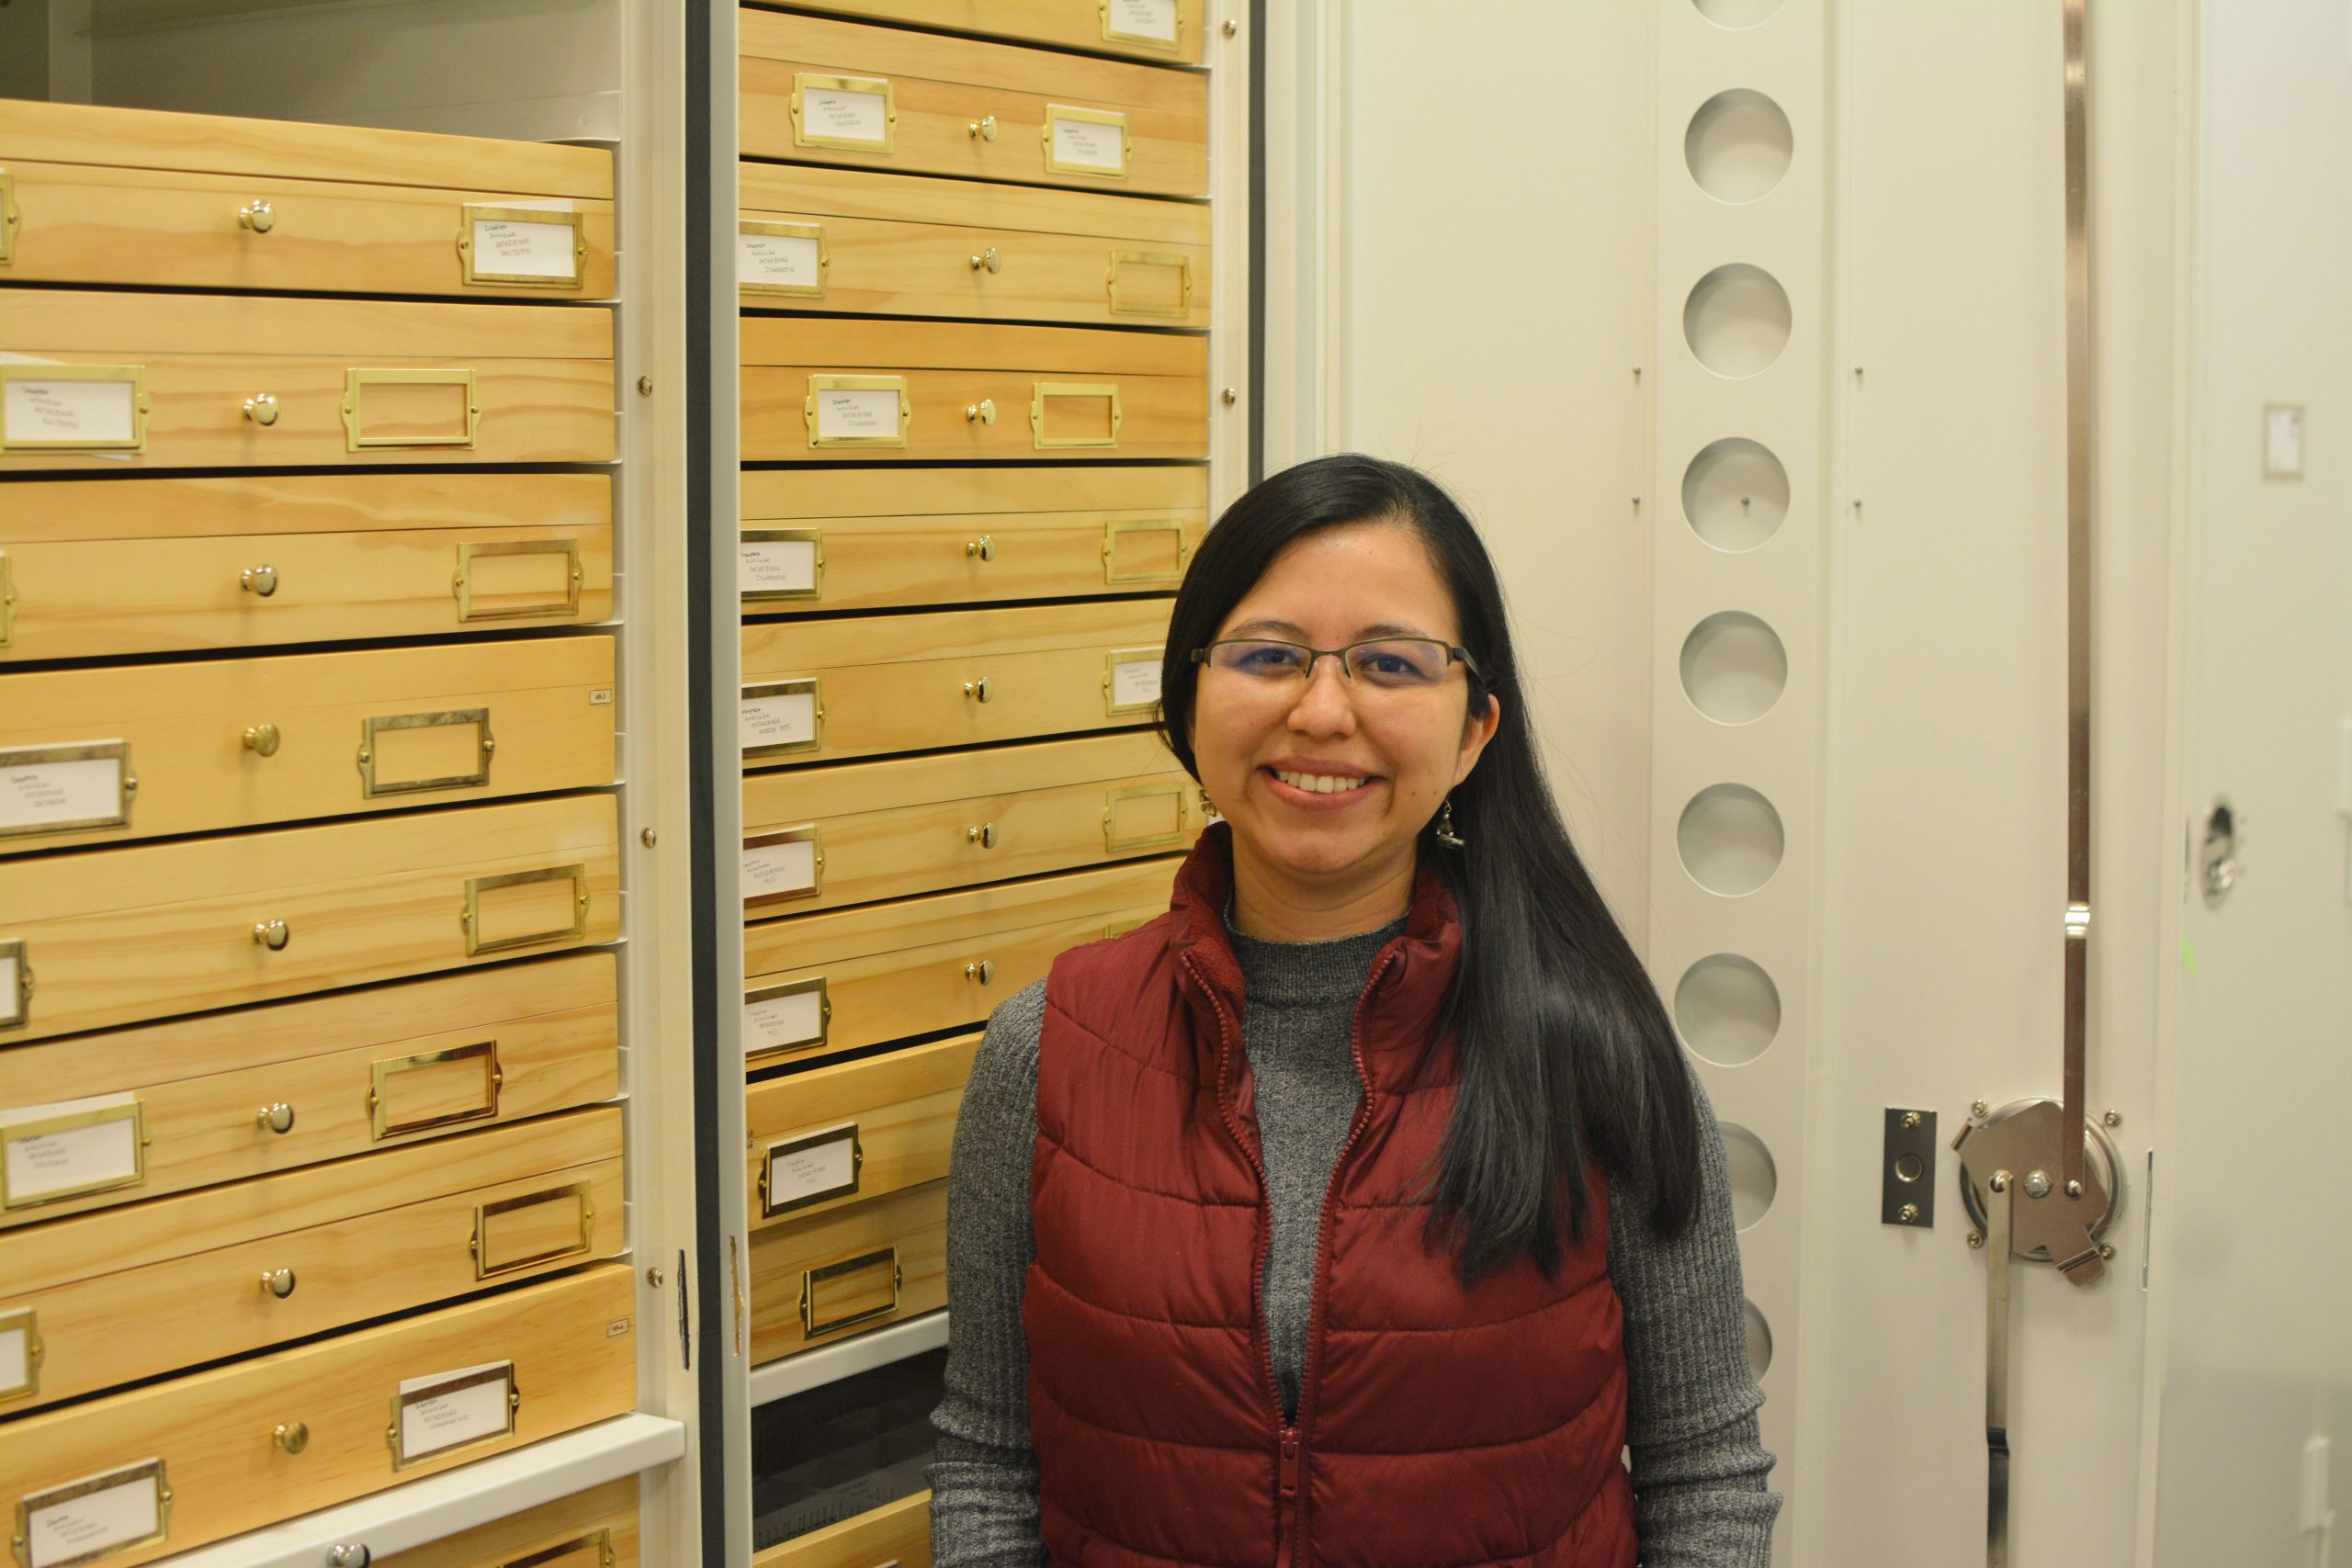 A person with dark hair in a red vest and gray shirt standing in front of collection specimen drawers.